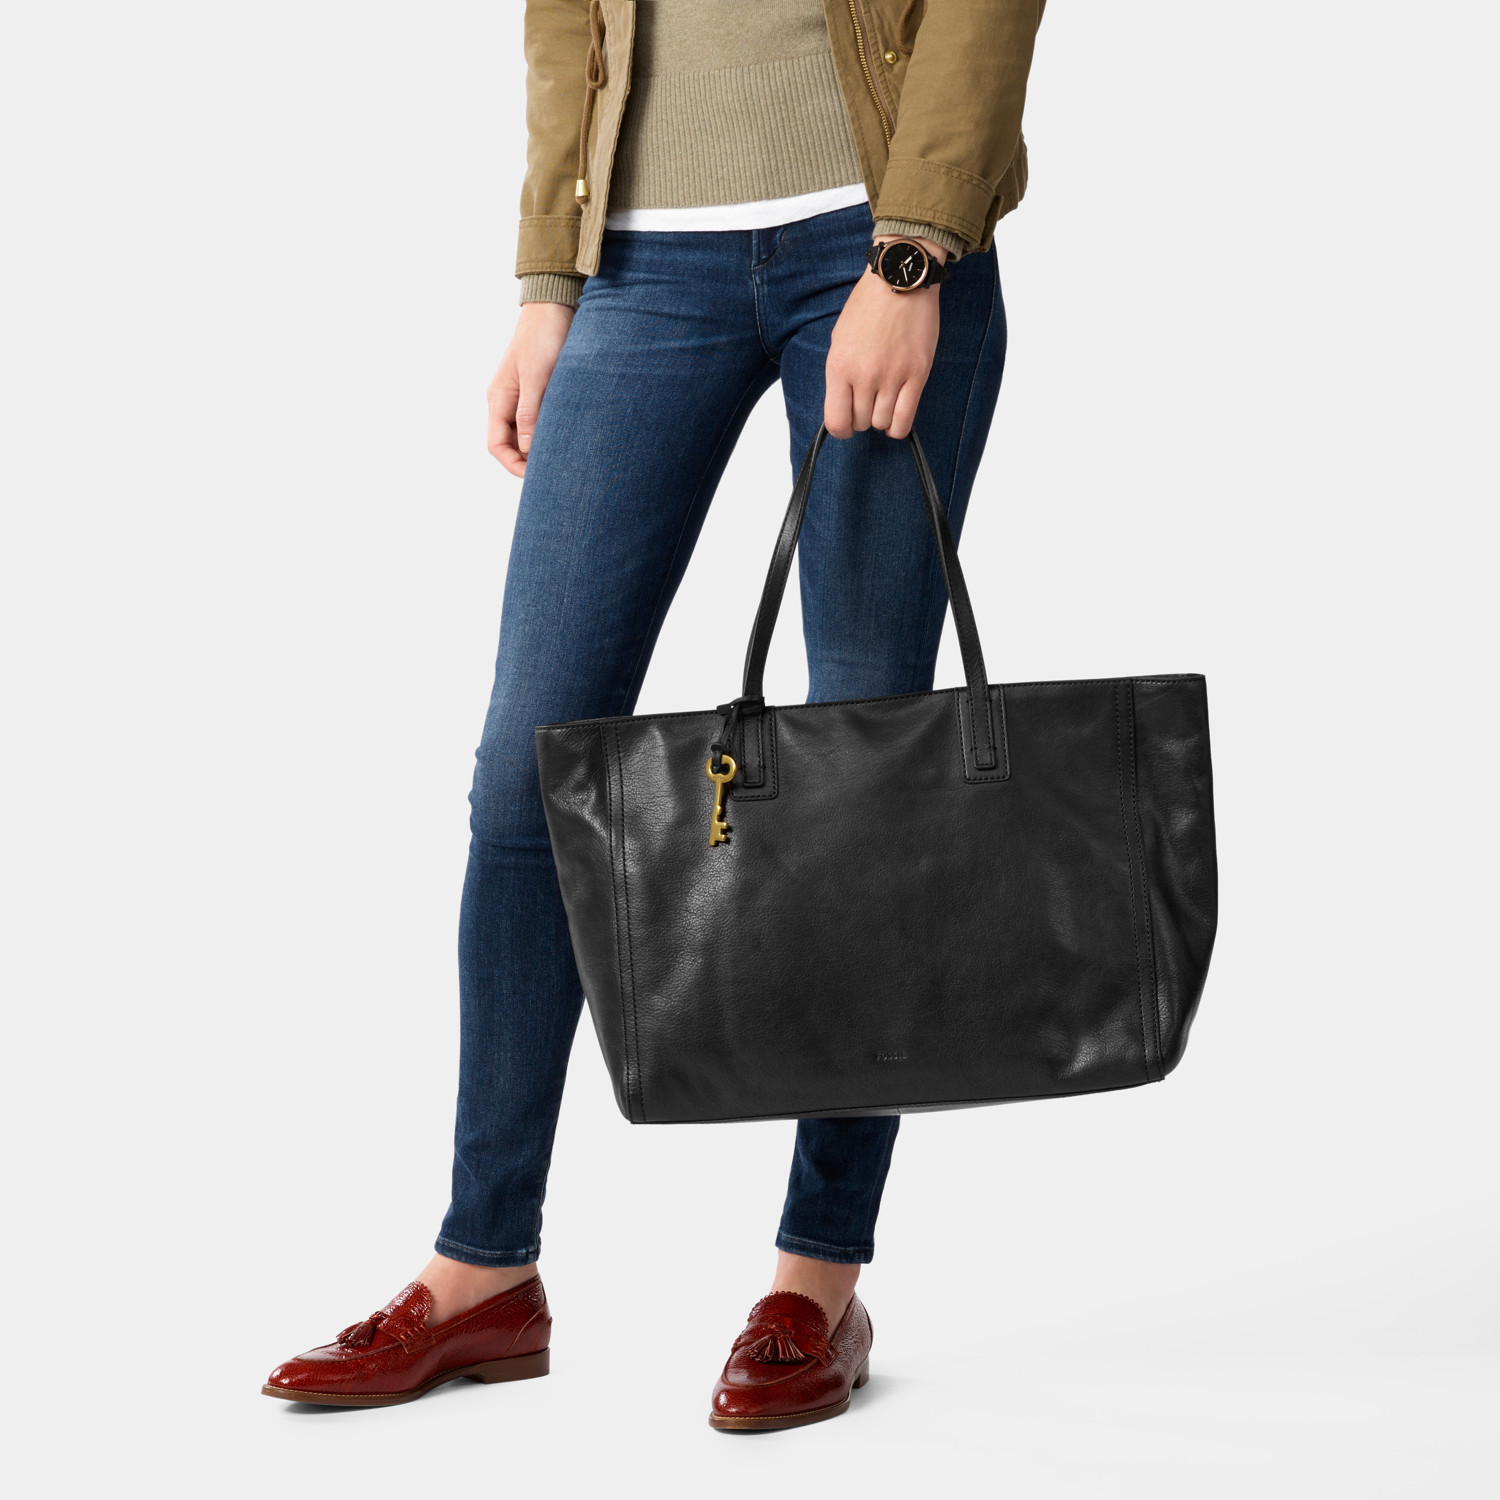 Emma Work Tote - Fossil